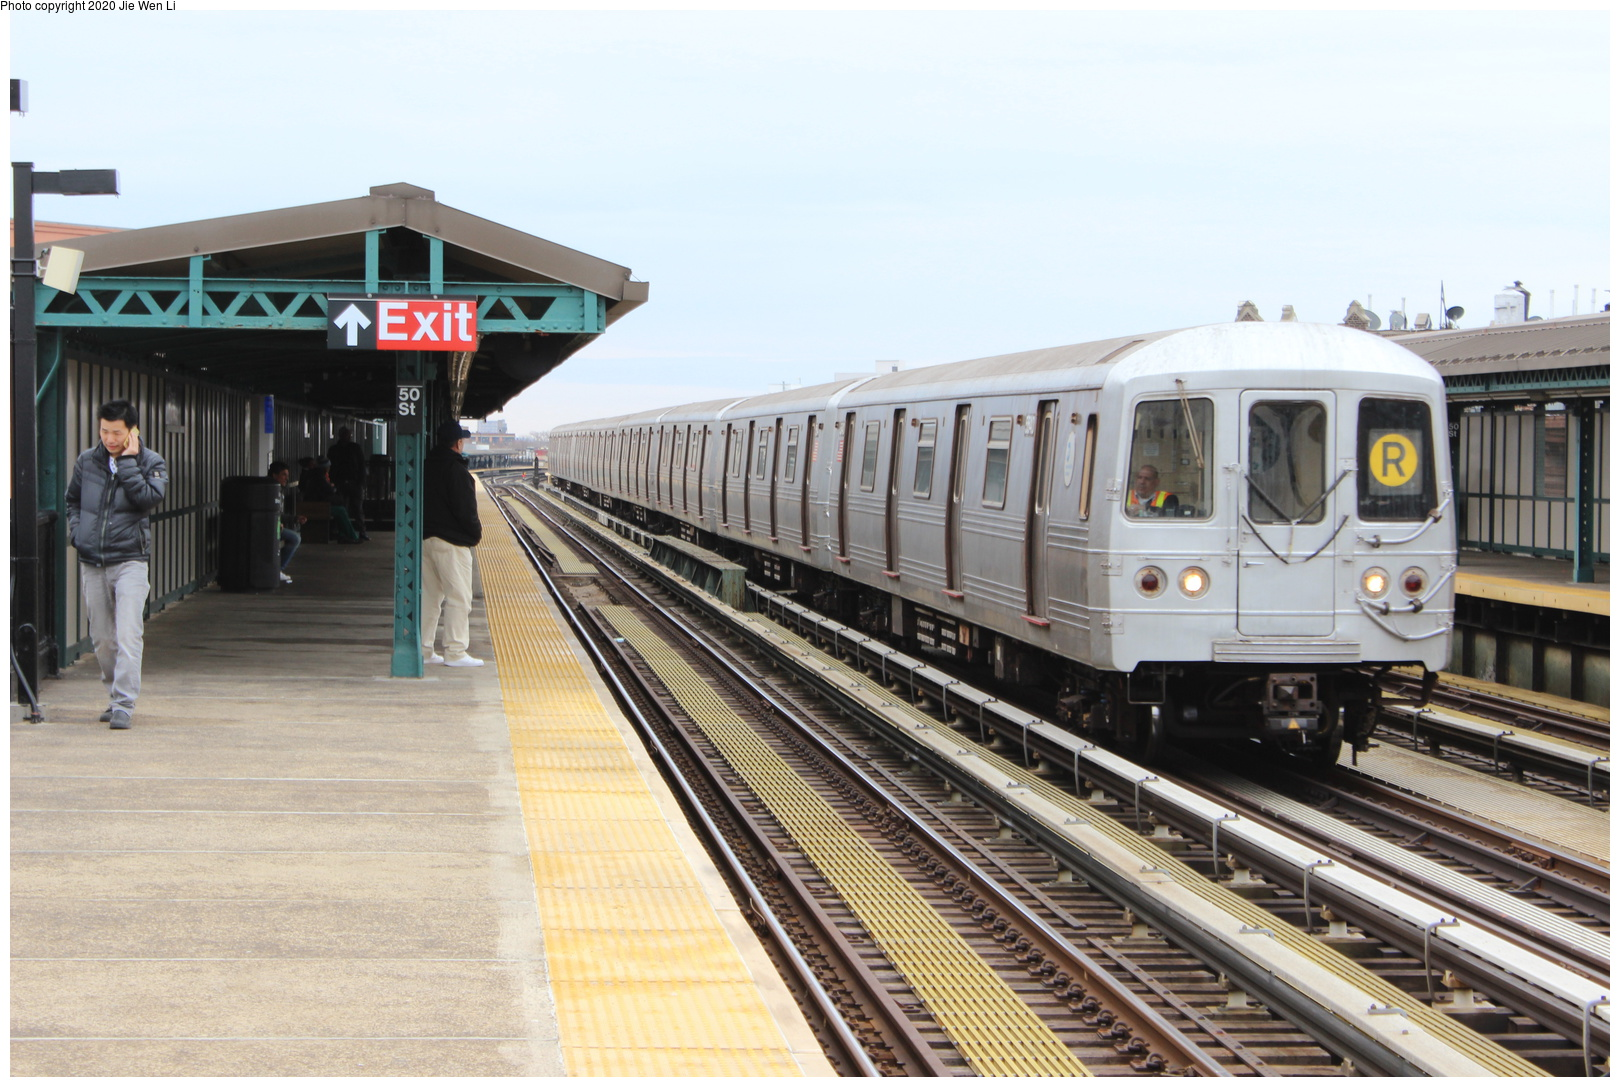 (188k, 1044x694)<br><b>Country:</b> United States<br><b>City:</b> New York<br><b>System:</b> New York City Transit<br><b>Line:</b> IRT Flushing Line<br><b>Location:</b> 46th Street/Bliss Street <br><b>Car:</b> Low-V Worlds Fair  <br><b>Photo by:</b> Joel Shanus<br><b>Viewed (this week/total):</b> 0 / 2015